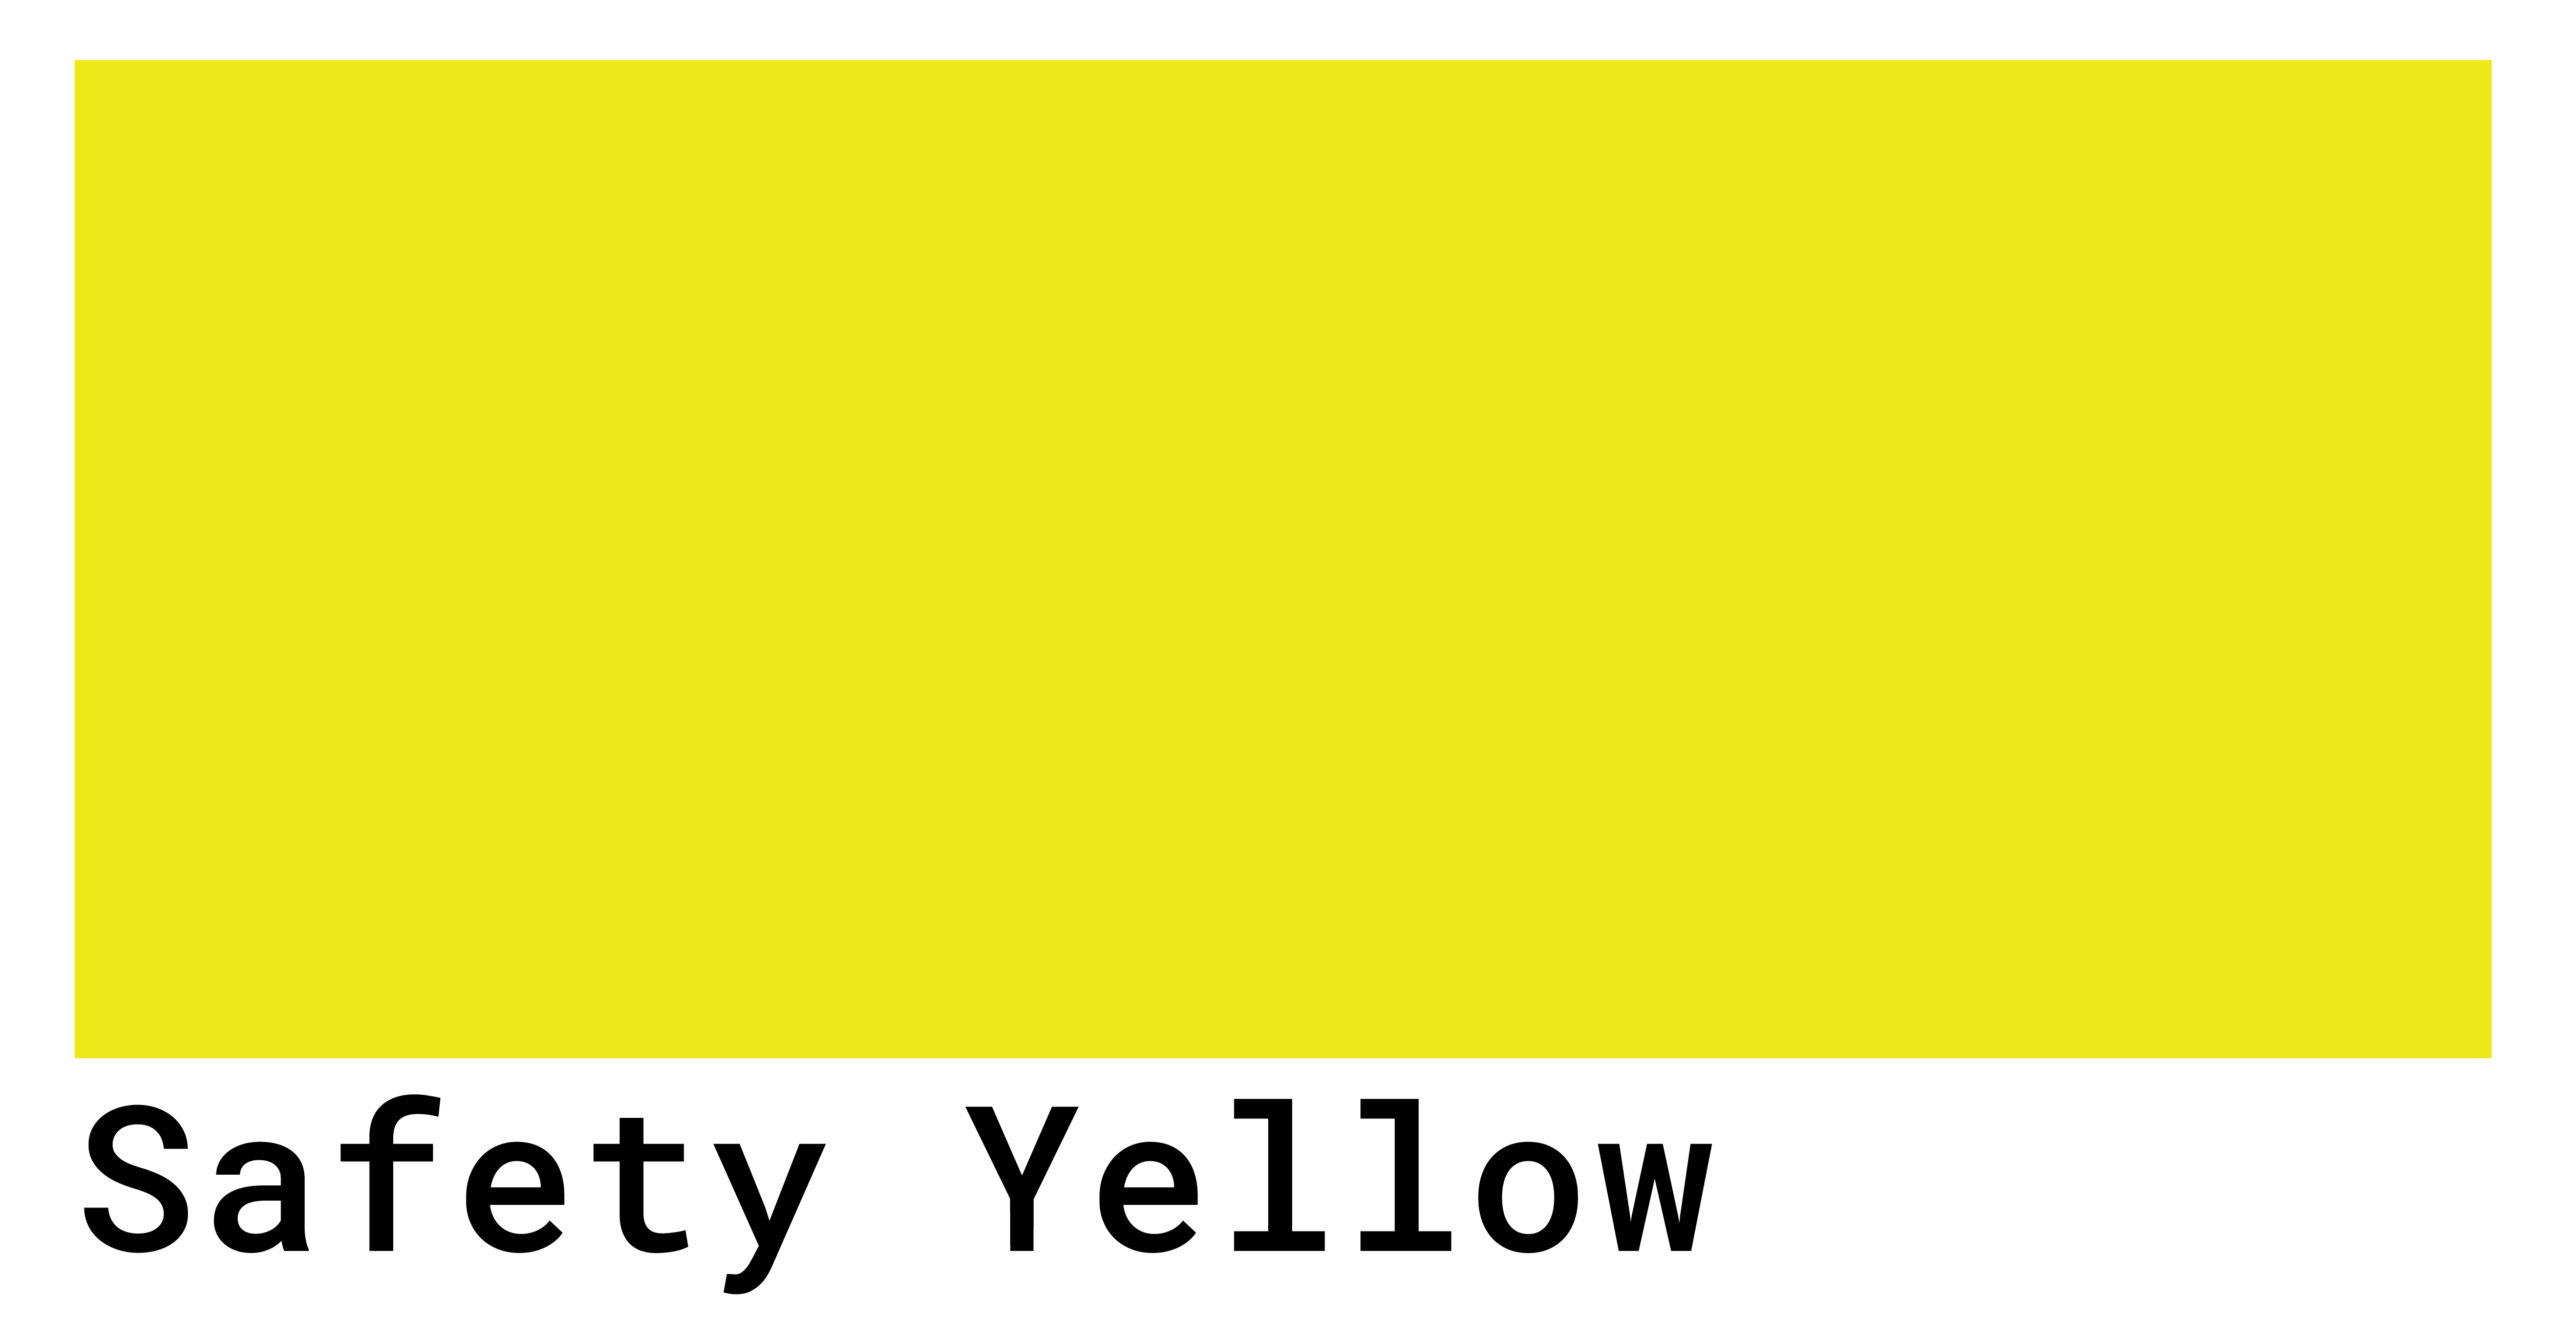 safety yellow color code